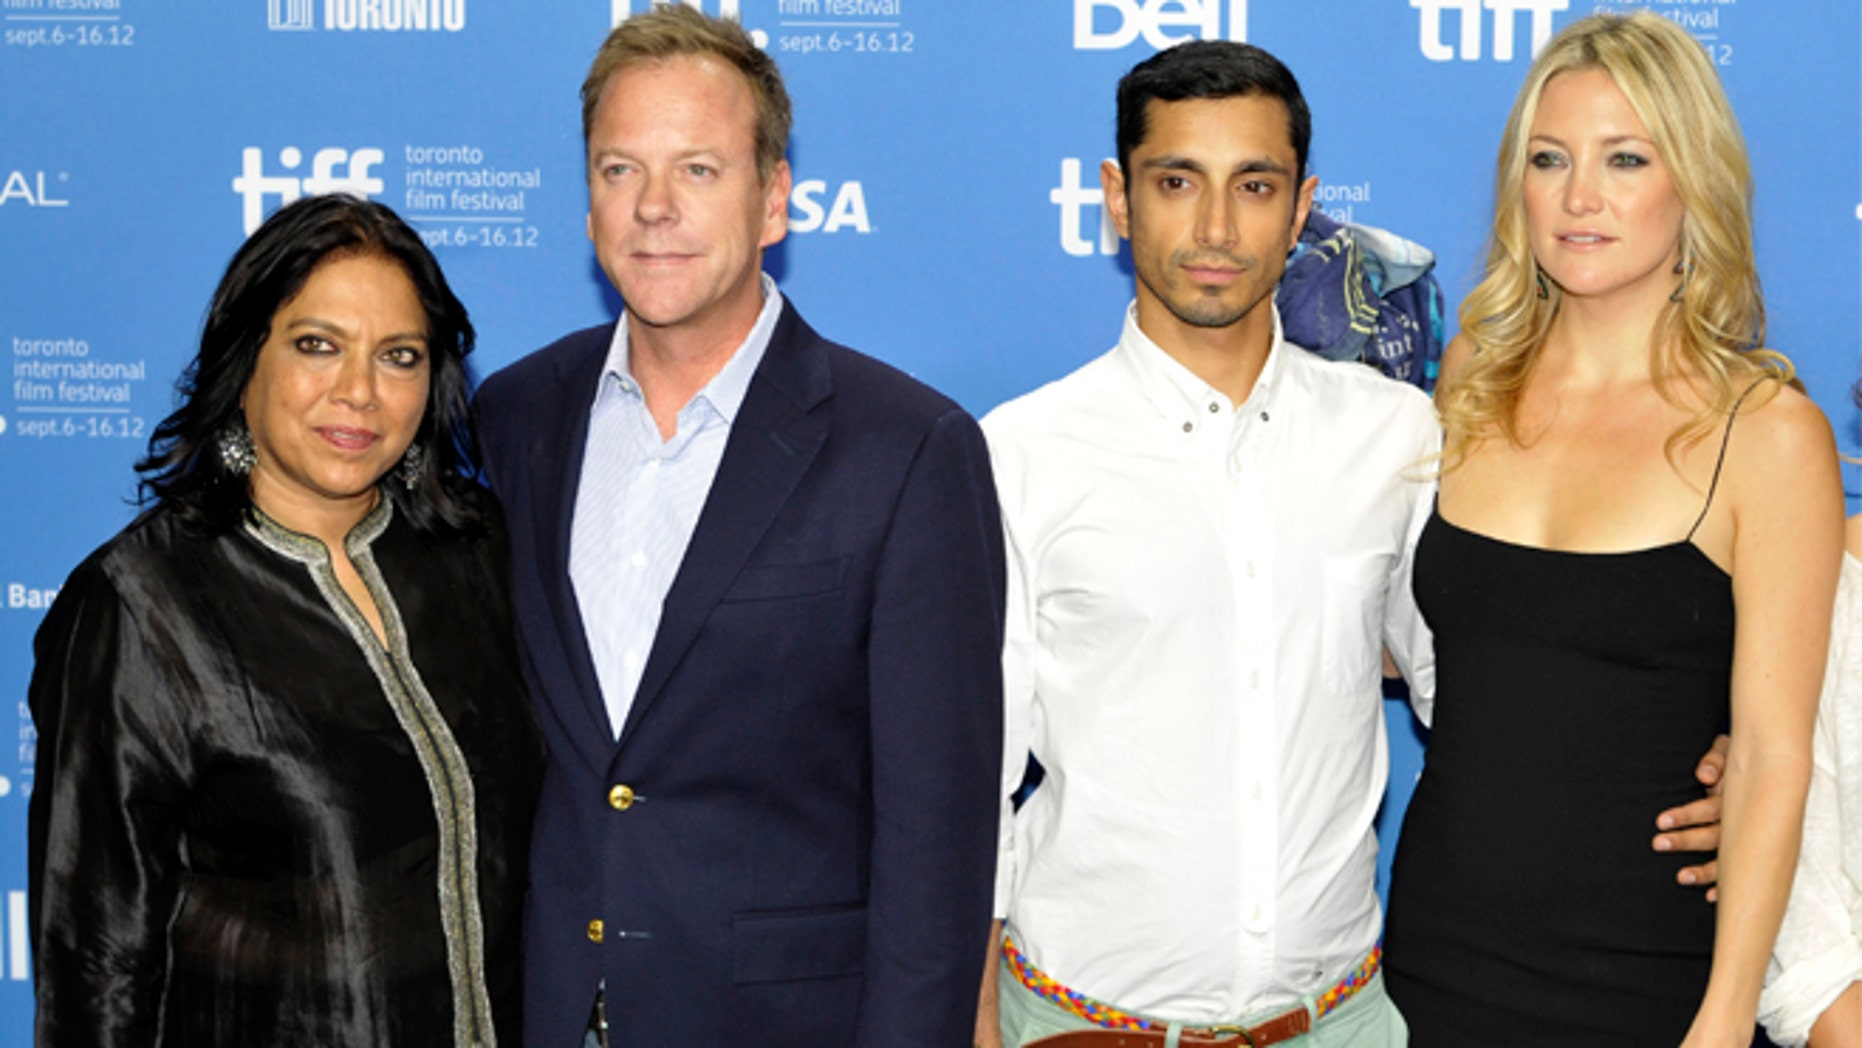 "Director Mira Nair, left, poses with cast members (from left) Kiefer Sutherland, Riz Ahmed and Kate Hudson at a news conference for their film ""The Reluctant Fundamentalist"" at the 37th Toronto International Film Festival September 9, 2012."